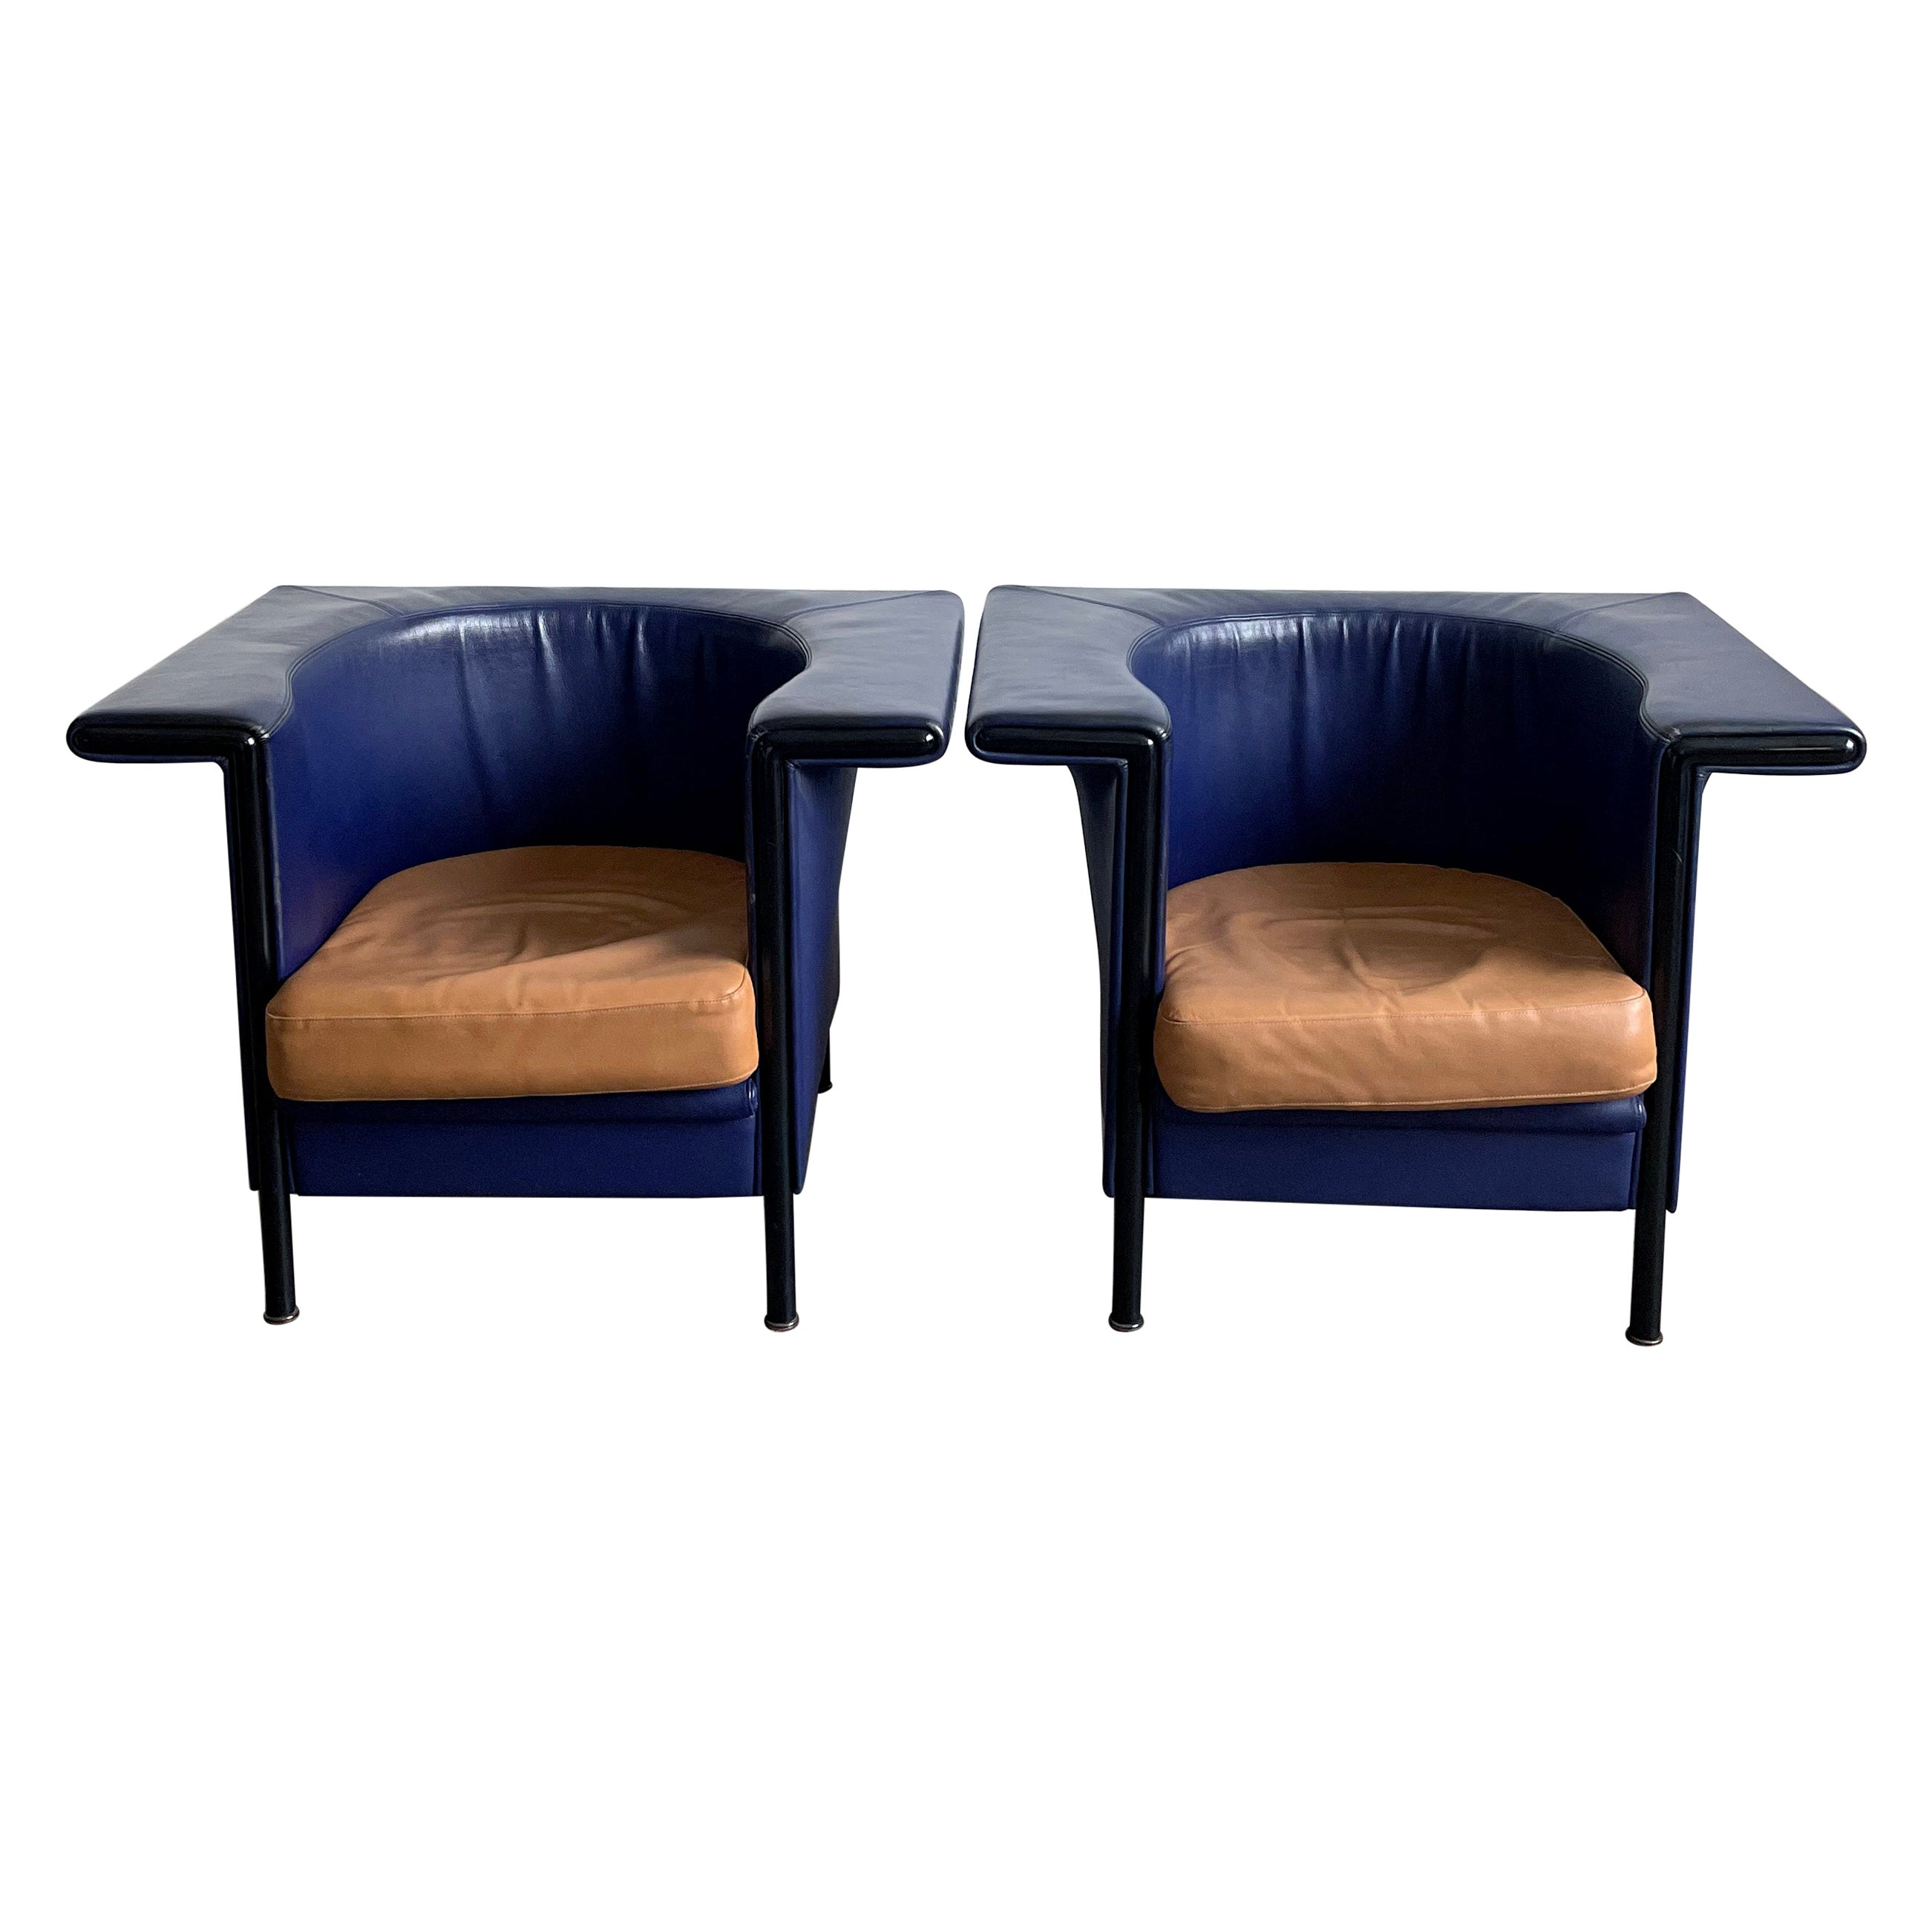 """Set of 2 """"Hockey"""" Leather Armchairs, by Antonio Citterio for Moroso Italy 1980s"""